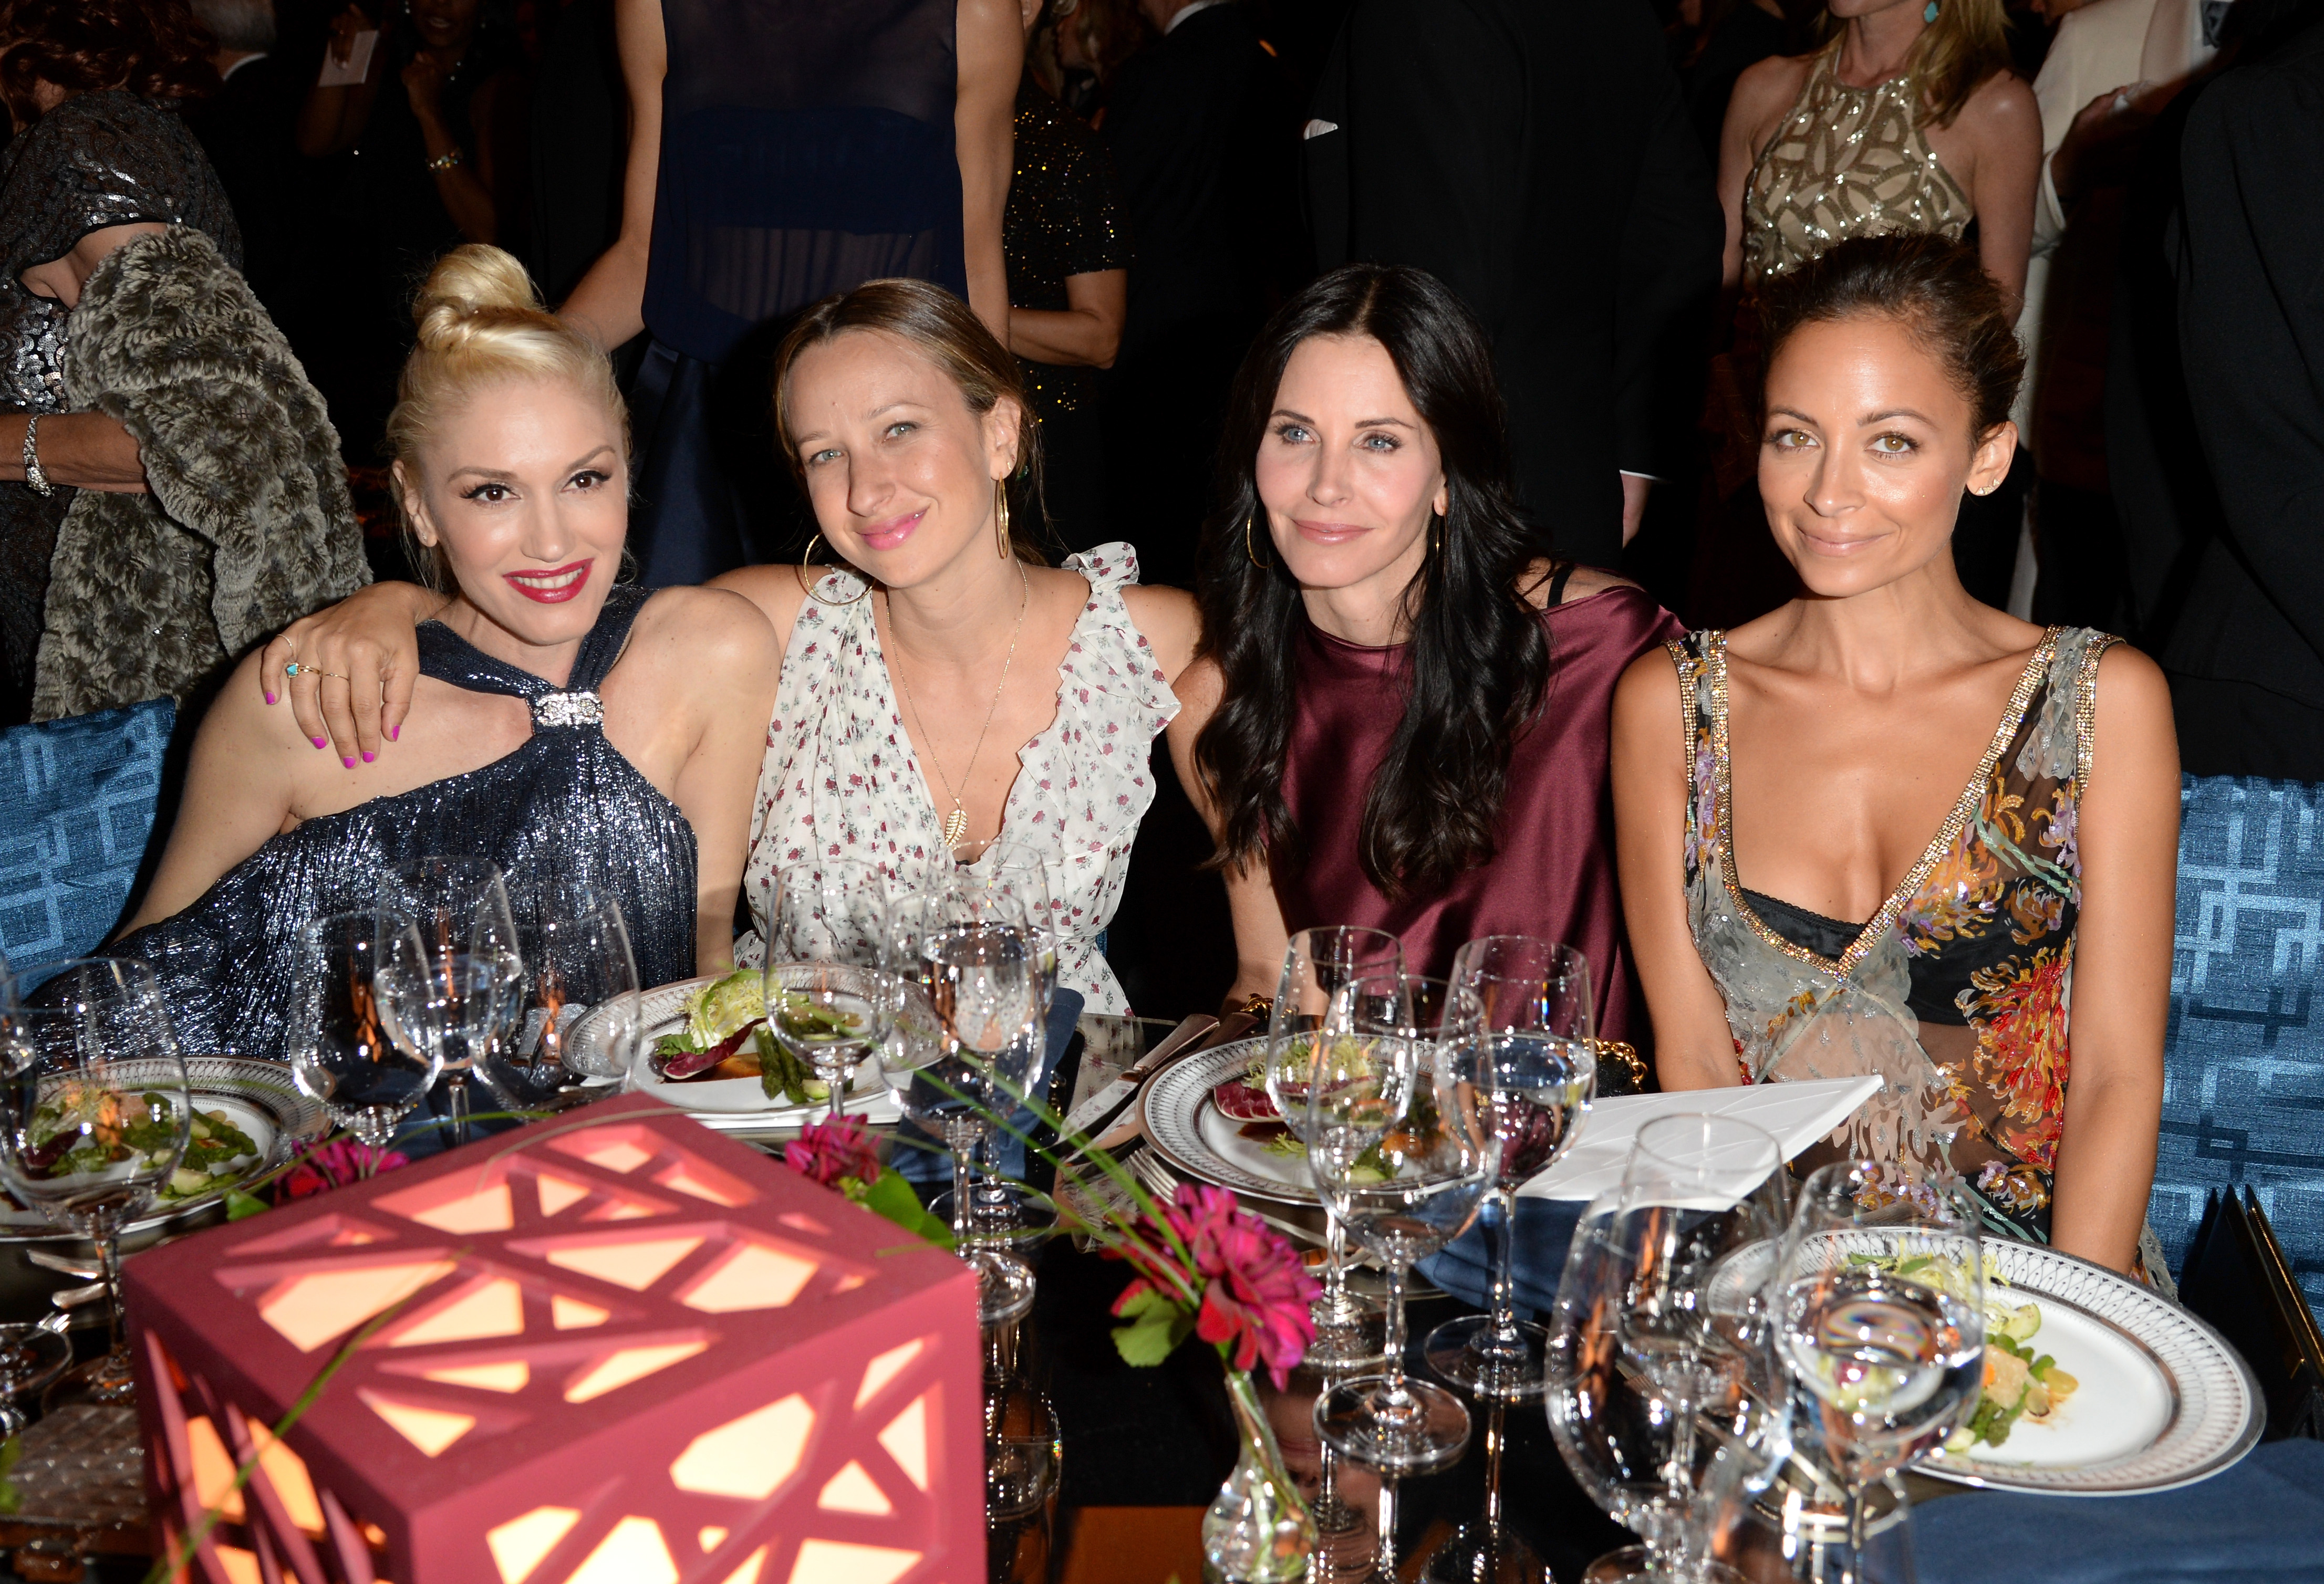 Gwen Stefani, Jennifer Meyer, Courteney Cox, and Nicole Richie catch up (Getty Images)